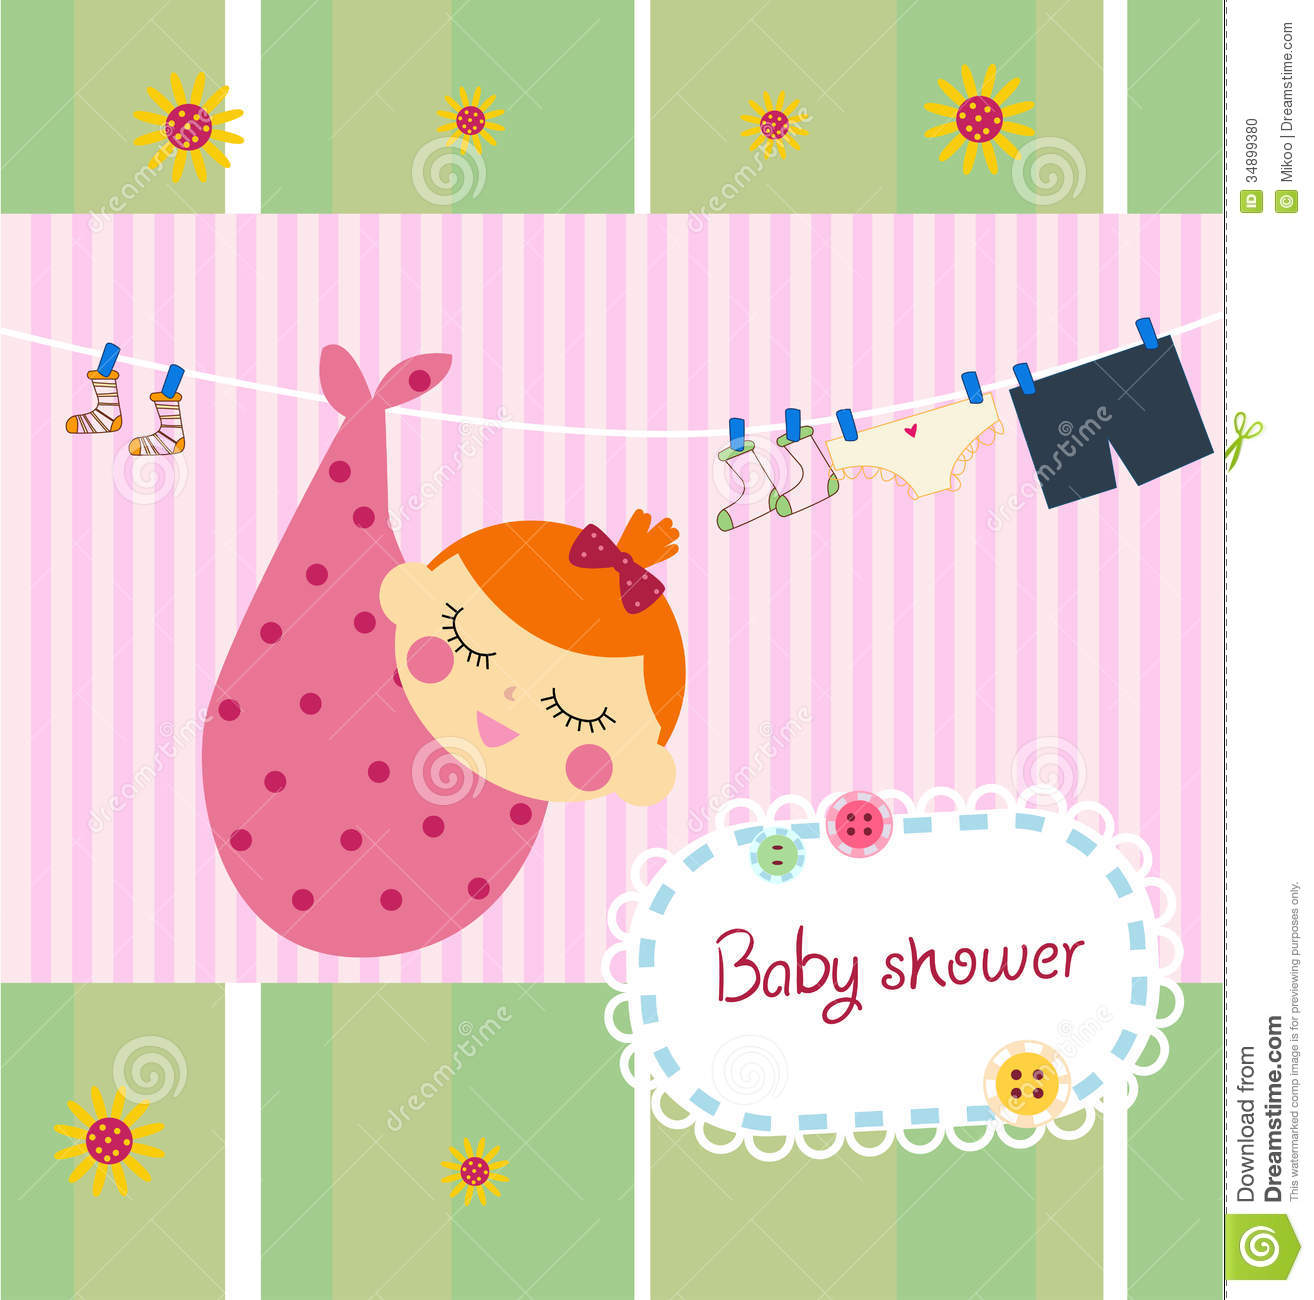 Baby Shower Card Stock Photo Image 34899380